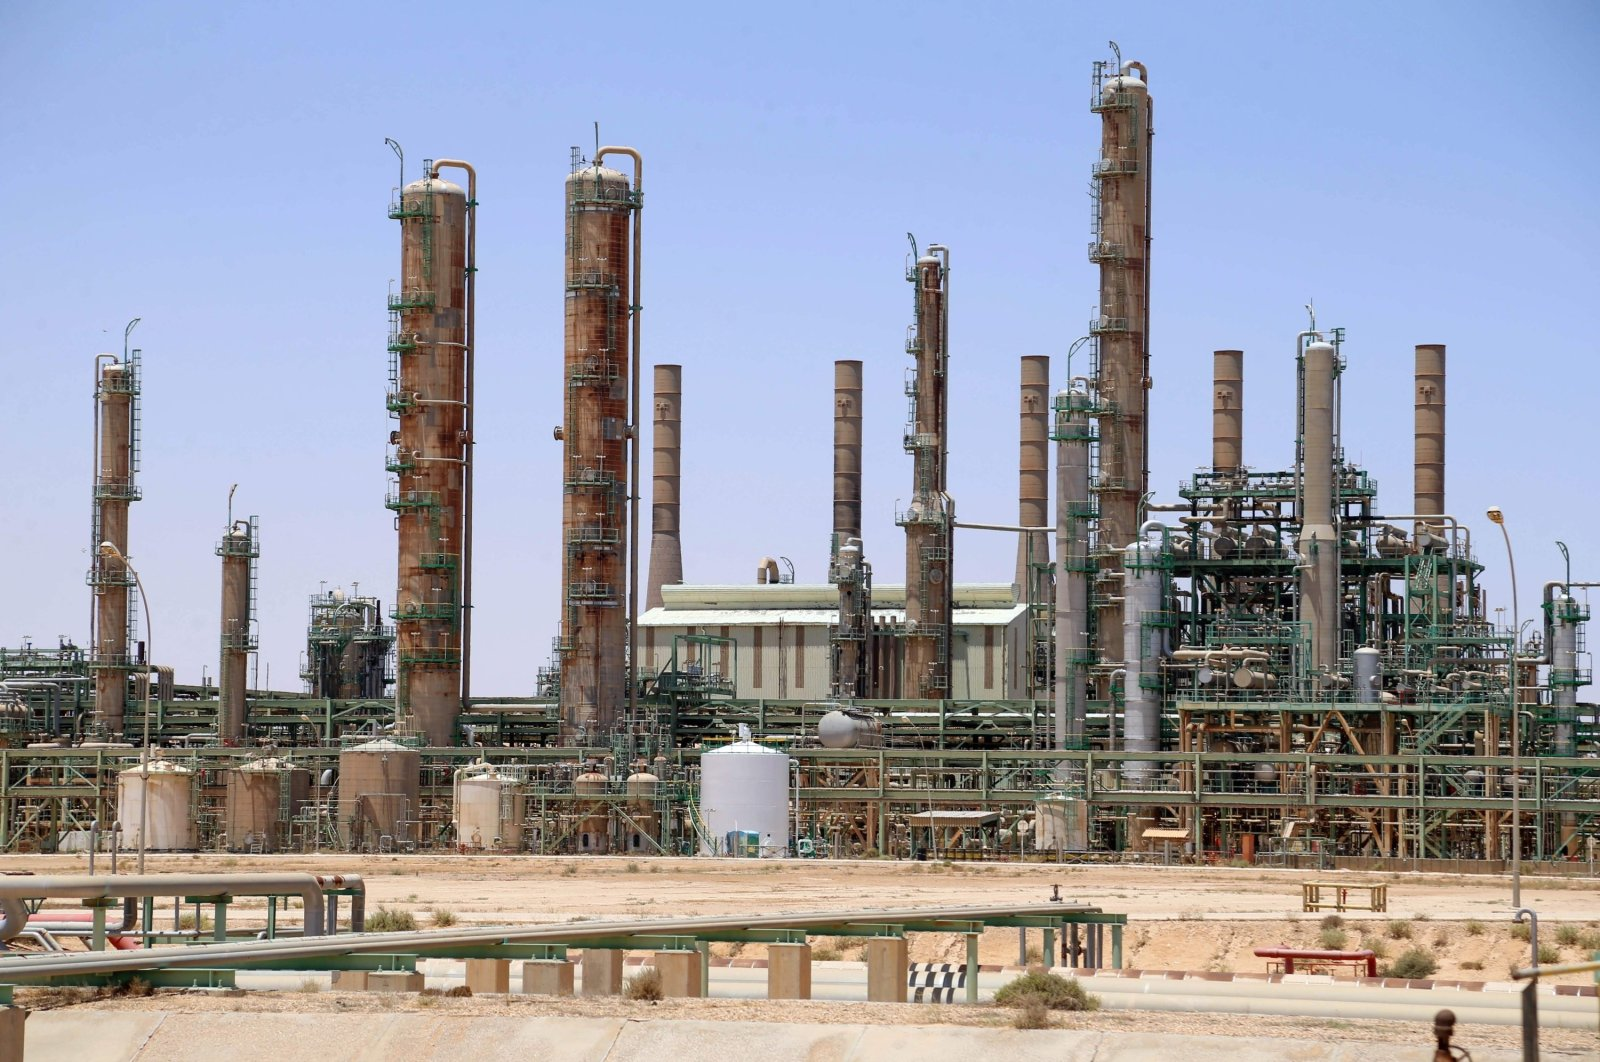 An oil refinery in northern town of Ras Lanuf, Libya, June 3, 2020. (AFP Photo)